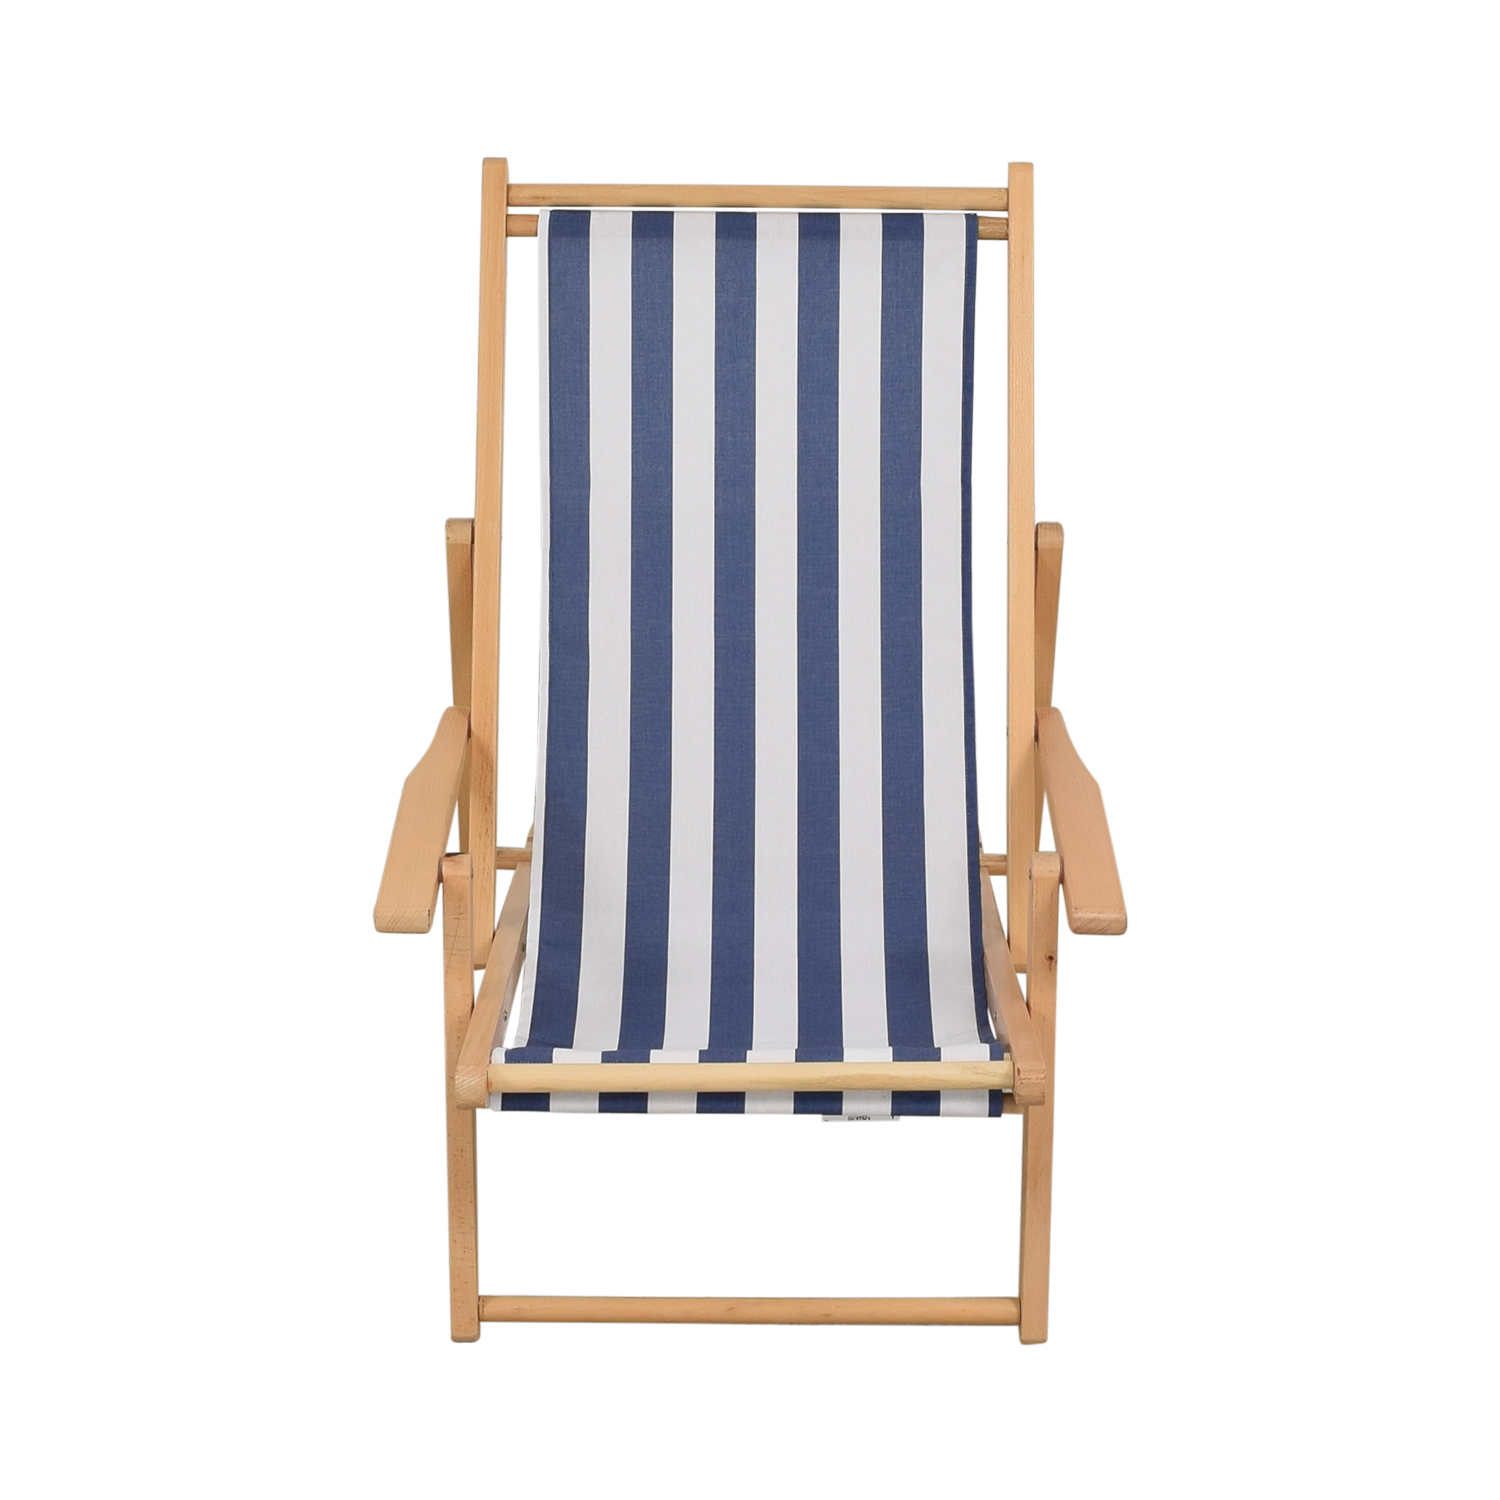 The Inside The Inside Cabana Chair with Sling blue white and light brown